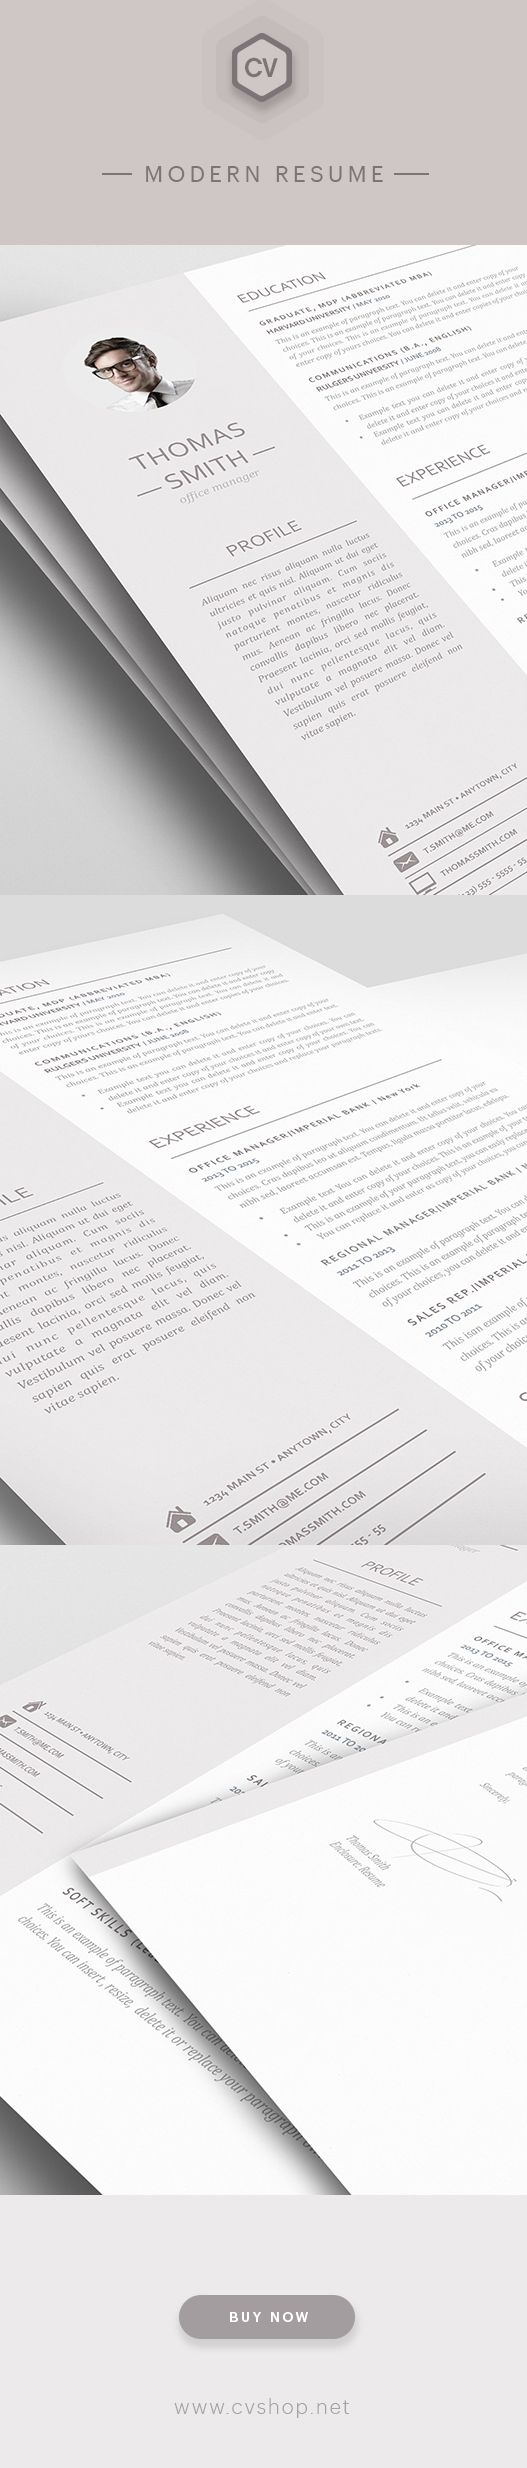 modern resume template 110960 premium line of resume cover letter templates easy edit with ms word apple pages - Best Resume Templates For Word